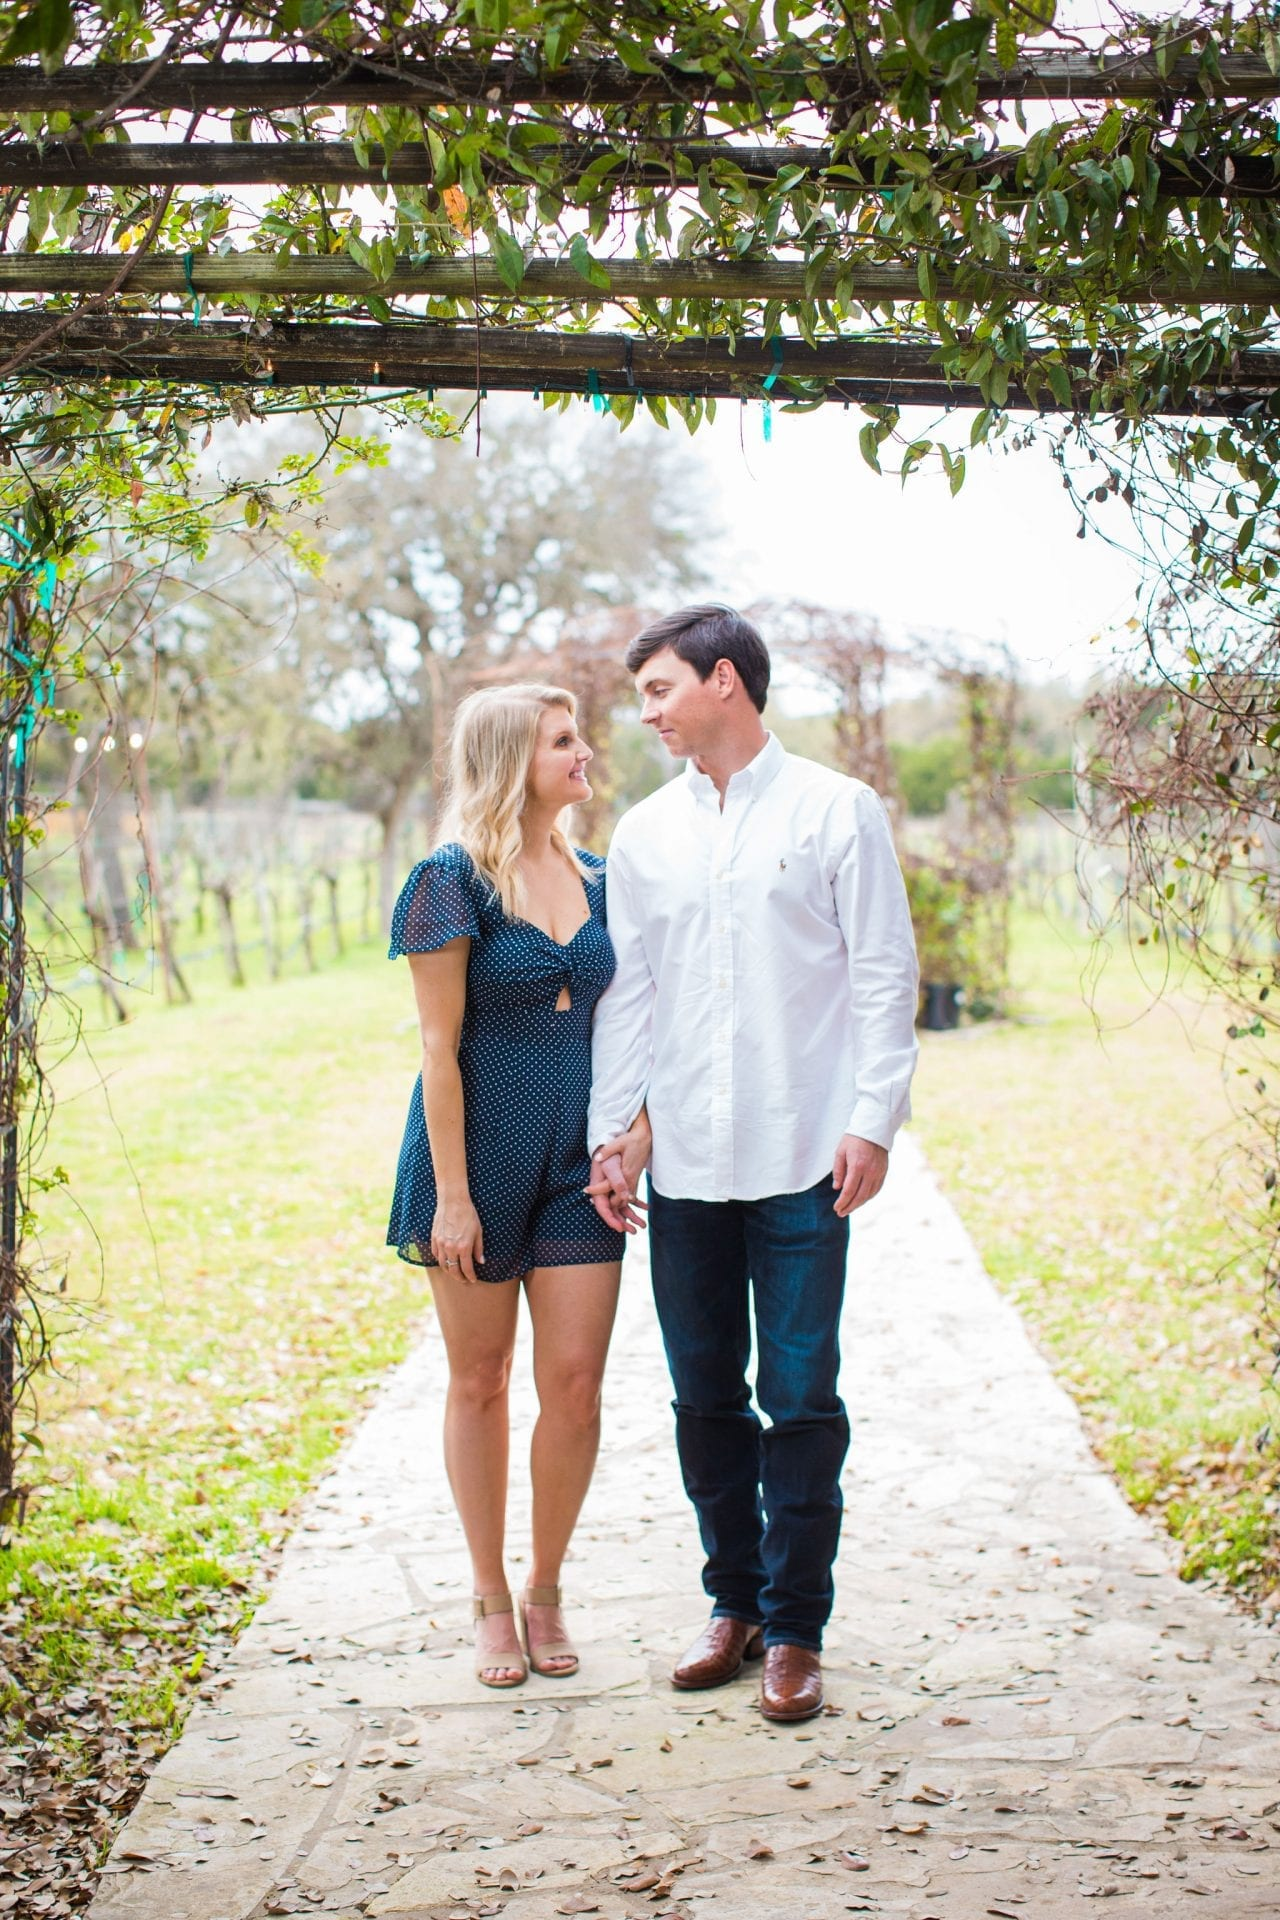 Michele Engagement session in the walkway at Oak Vally Vineyards